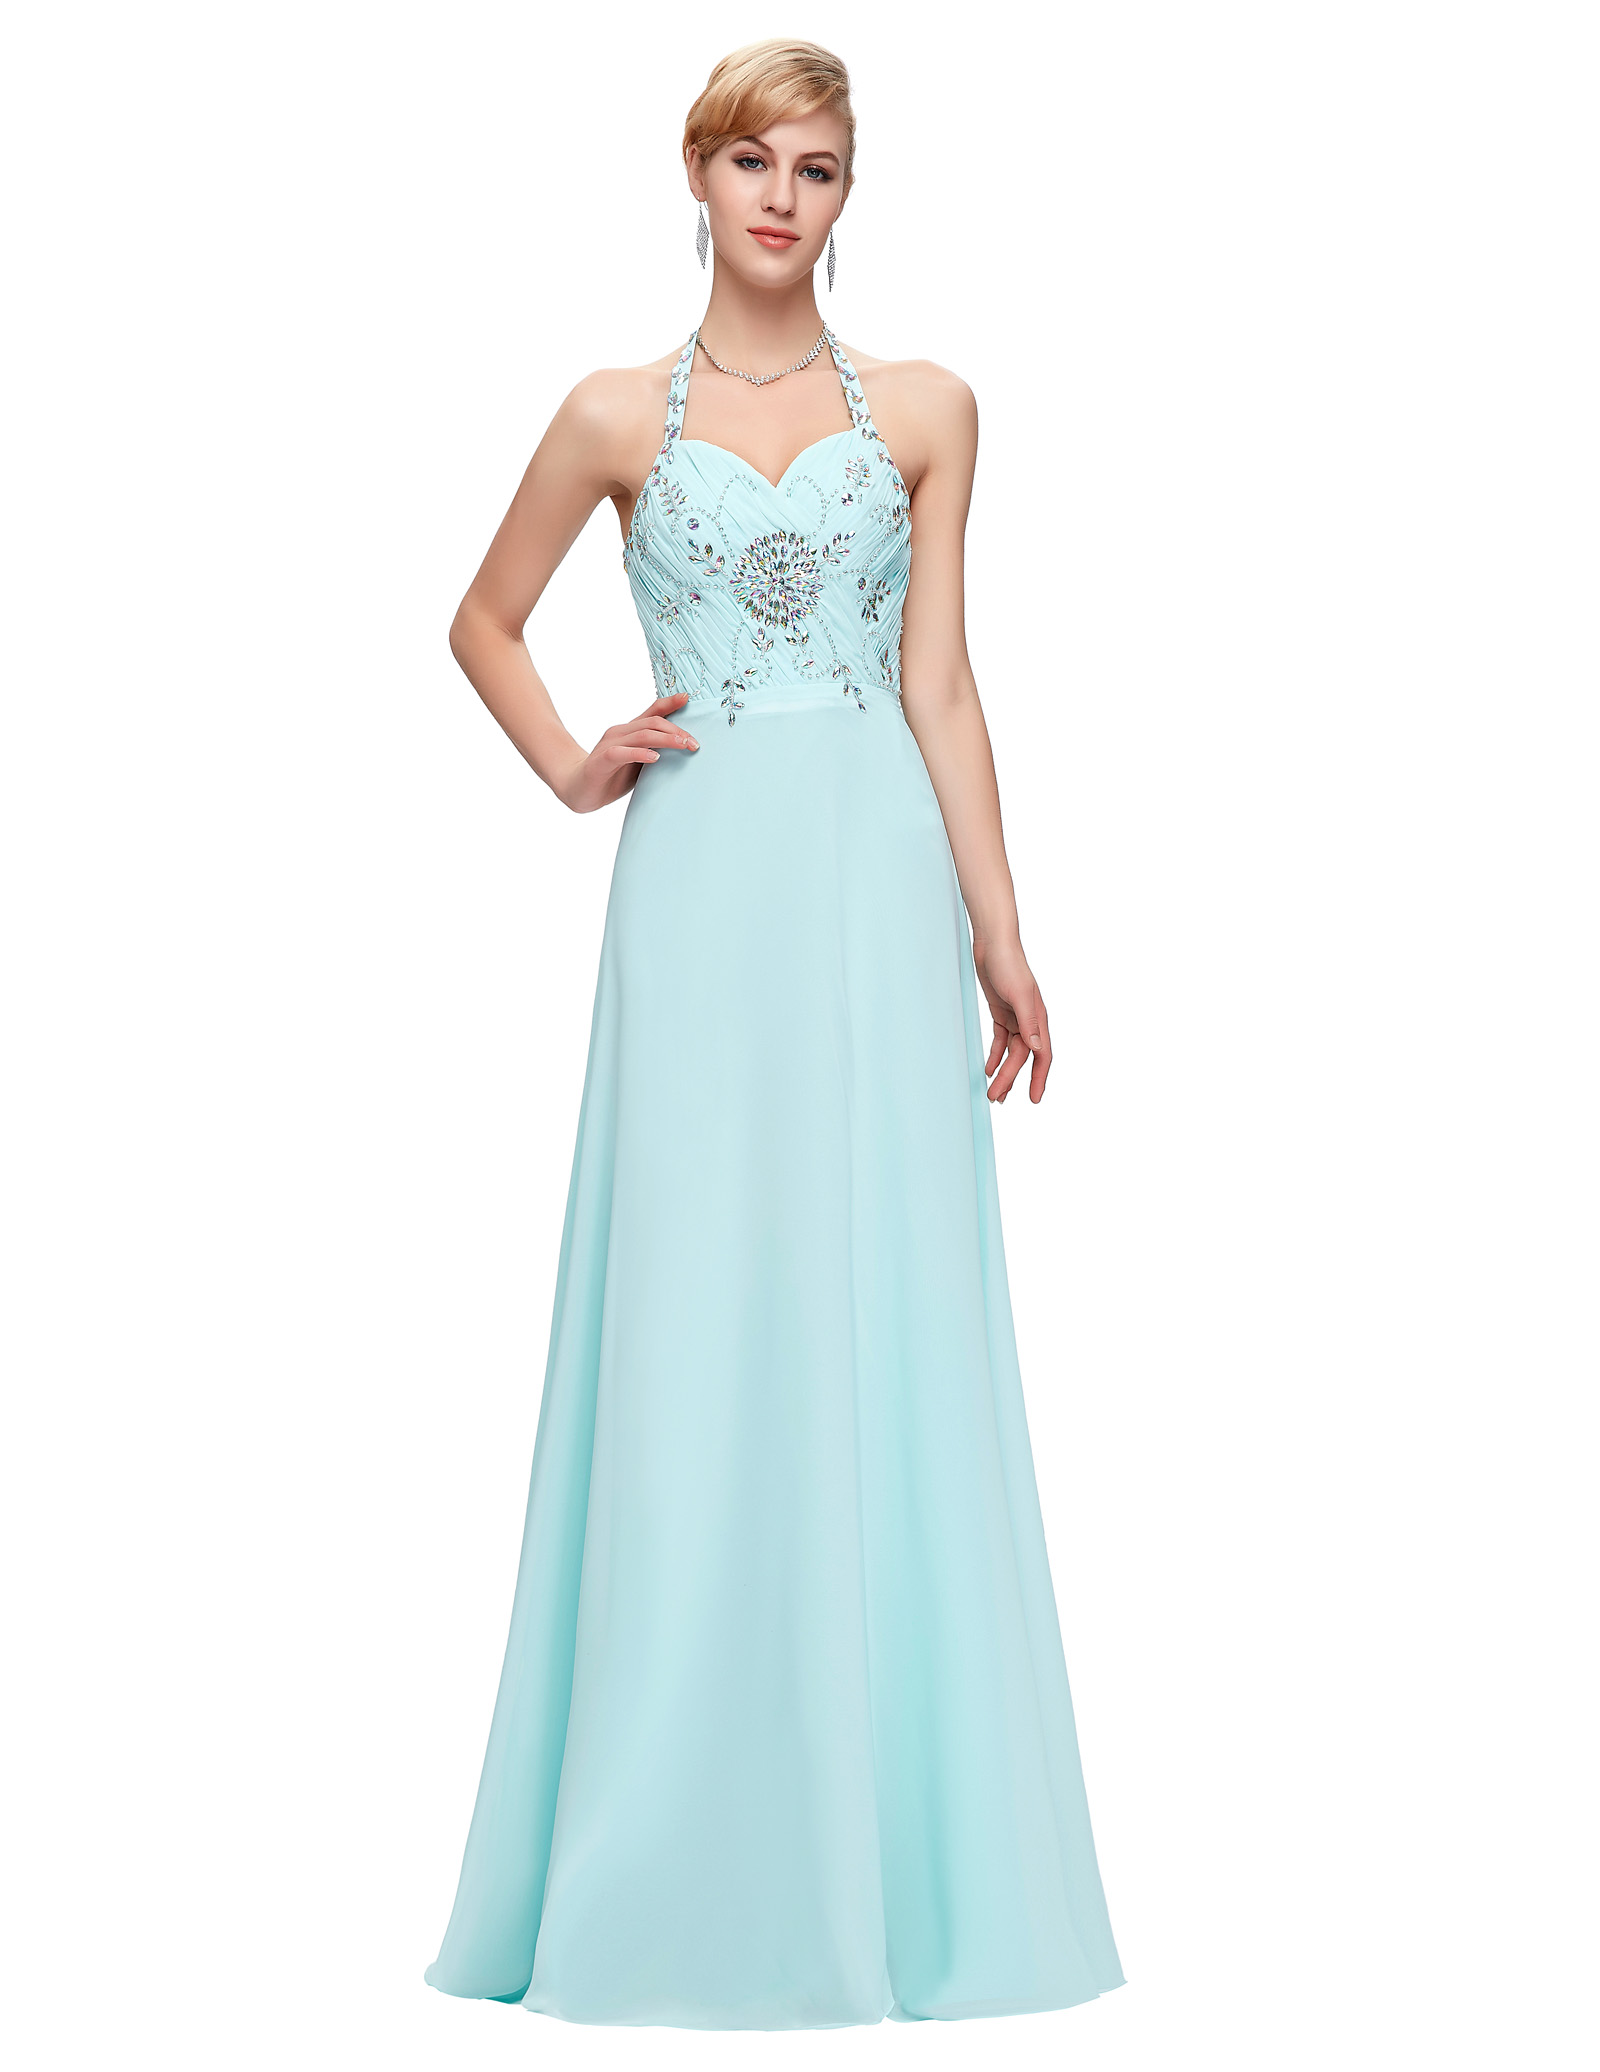 Ice blue prom dresses - Dressed for less